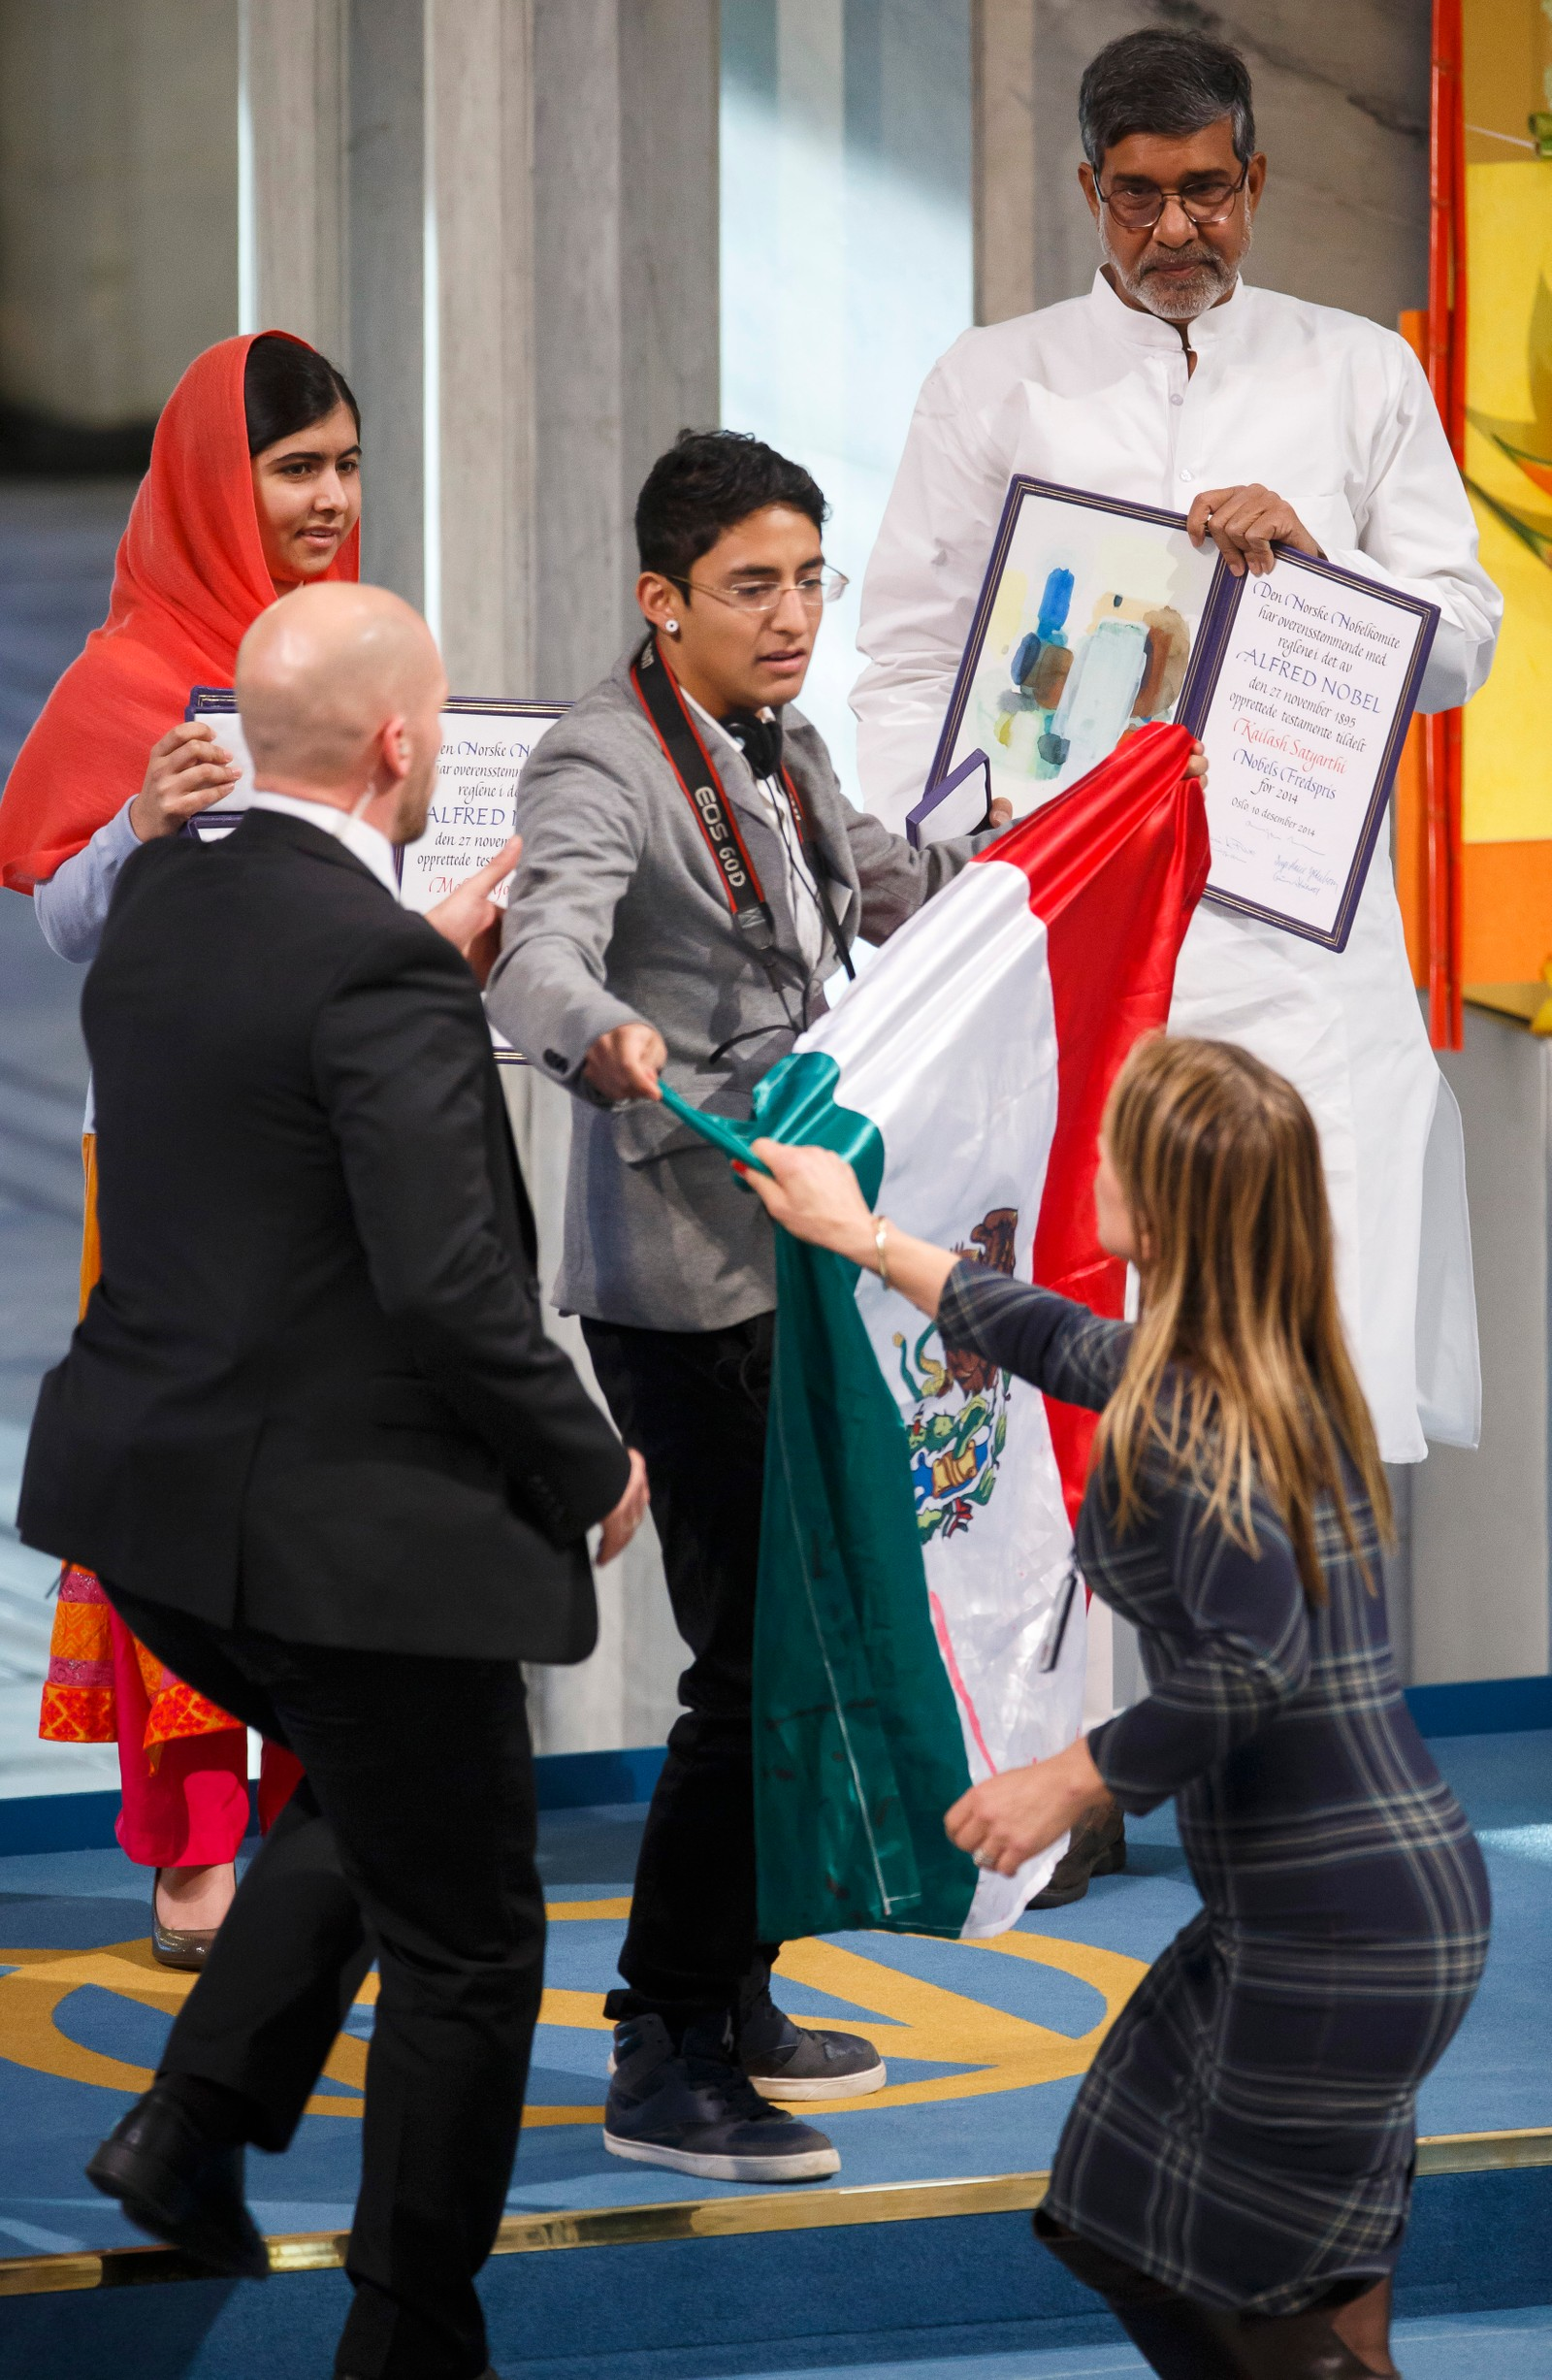 A man holding the Mexican flag is led away by security after attempting to get on stage with Nobel Peace Prize winners Malala Yousafzai from Pakistan and Kailash Satyarthi of India during the Nobel Peace Prize award ceremony in Oslo, Norway, Wednesday, Dec. 10, 2014. The Nobel Peace Prize is being shared between Malala Yousafzai, the 17-year-old Taliban attack survivor, and the youngest Nobel Prize winner ever, and Indian children's rights activist Kailash Satyarthi in a ceremony in Oslo on Wednesday. (